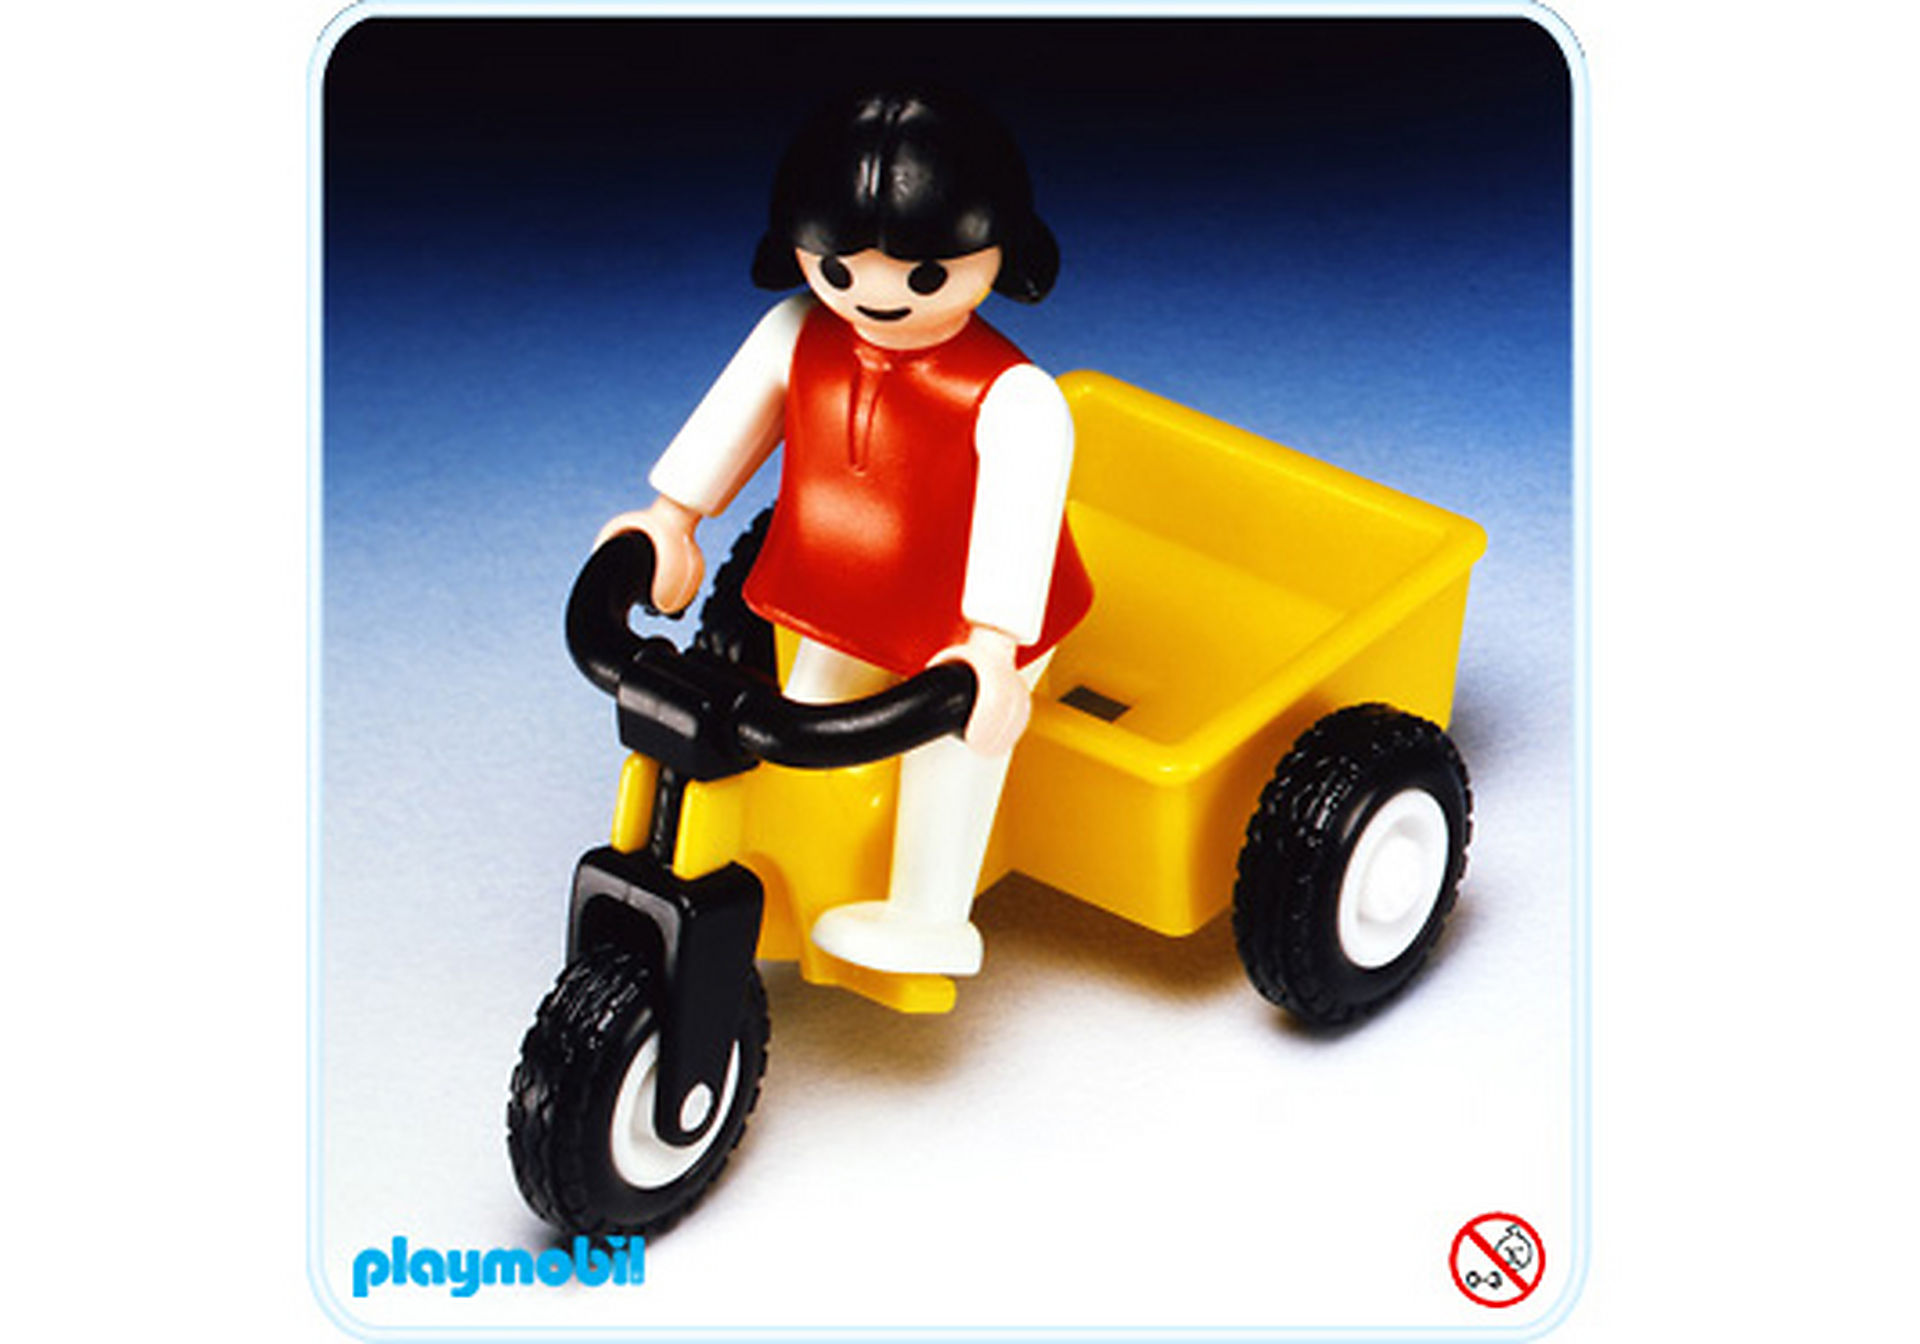 http://media.playmobil.com/i/playmobil/3359-A_product_detail/Kind/Dreirad